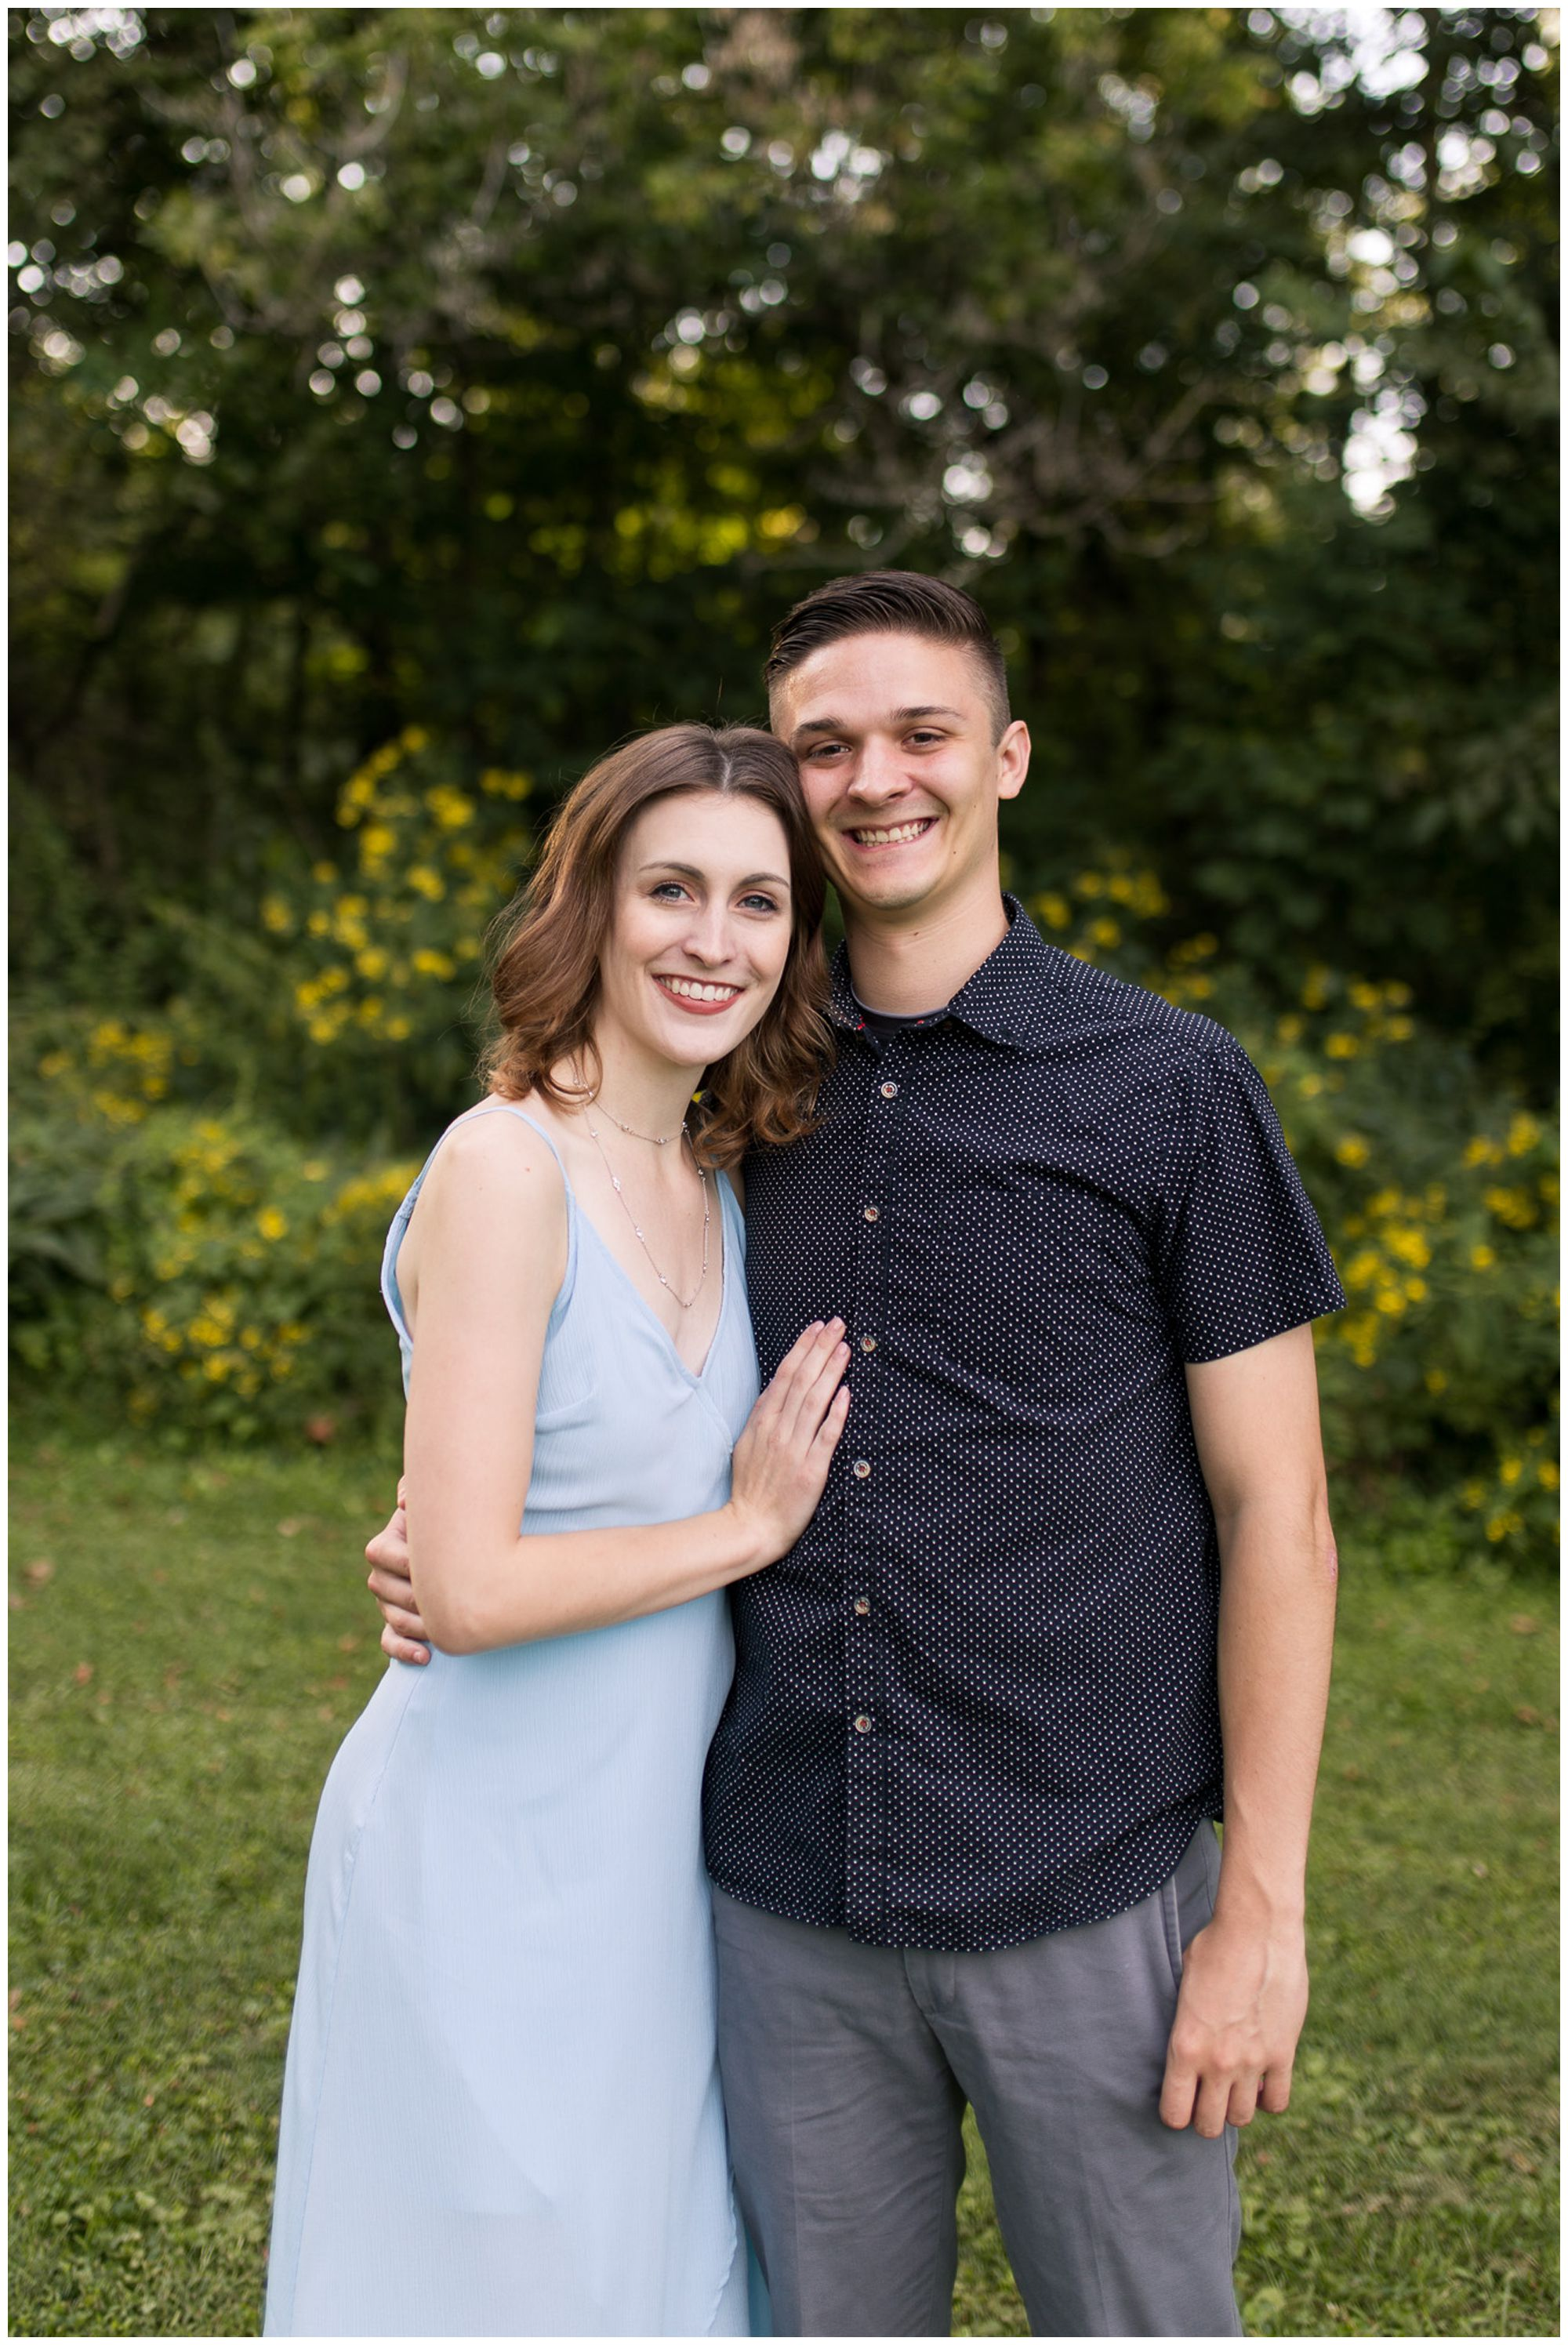 bride with hand on groom's chest during Fort Wayne engagement session at Foster Park